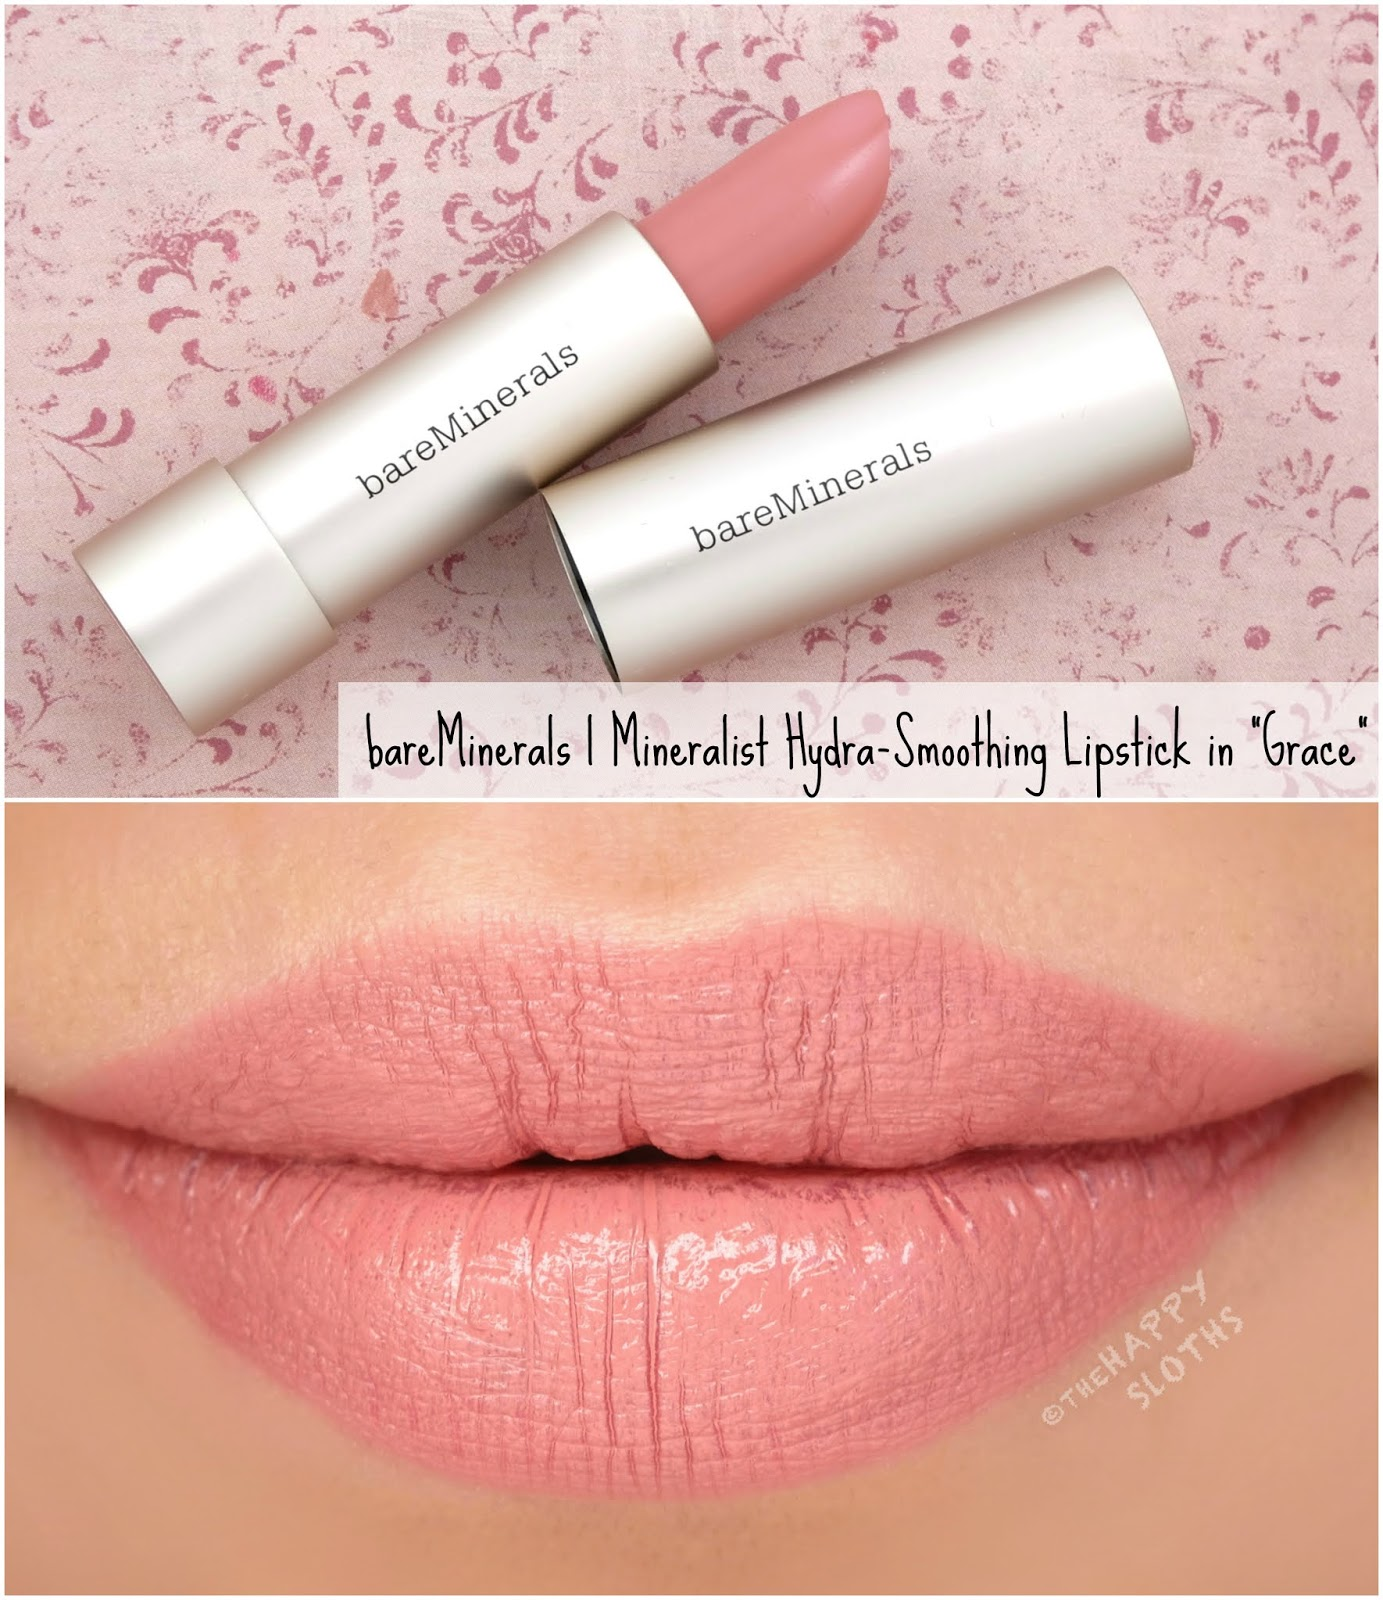 "bareMinerals | Mineralist Hydra-Smoothing Lipstick in ""Grace"": Review and Swatches"